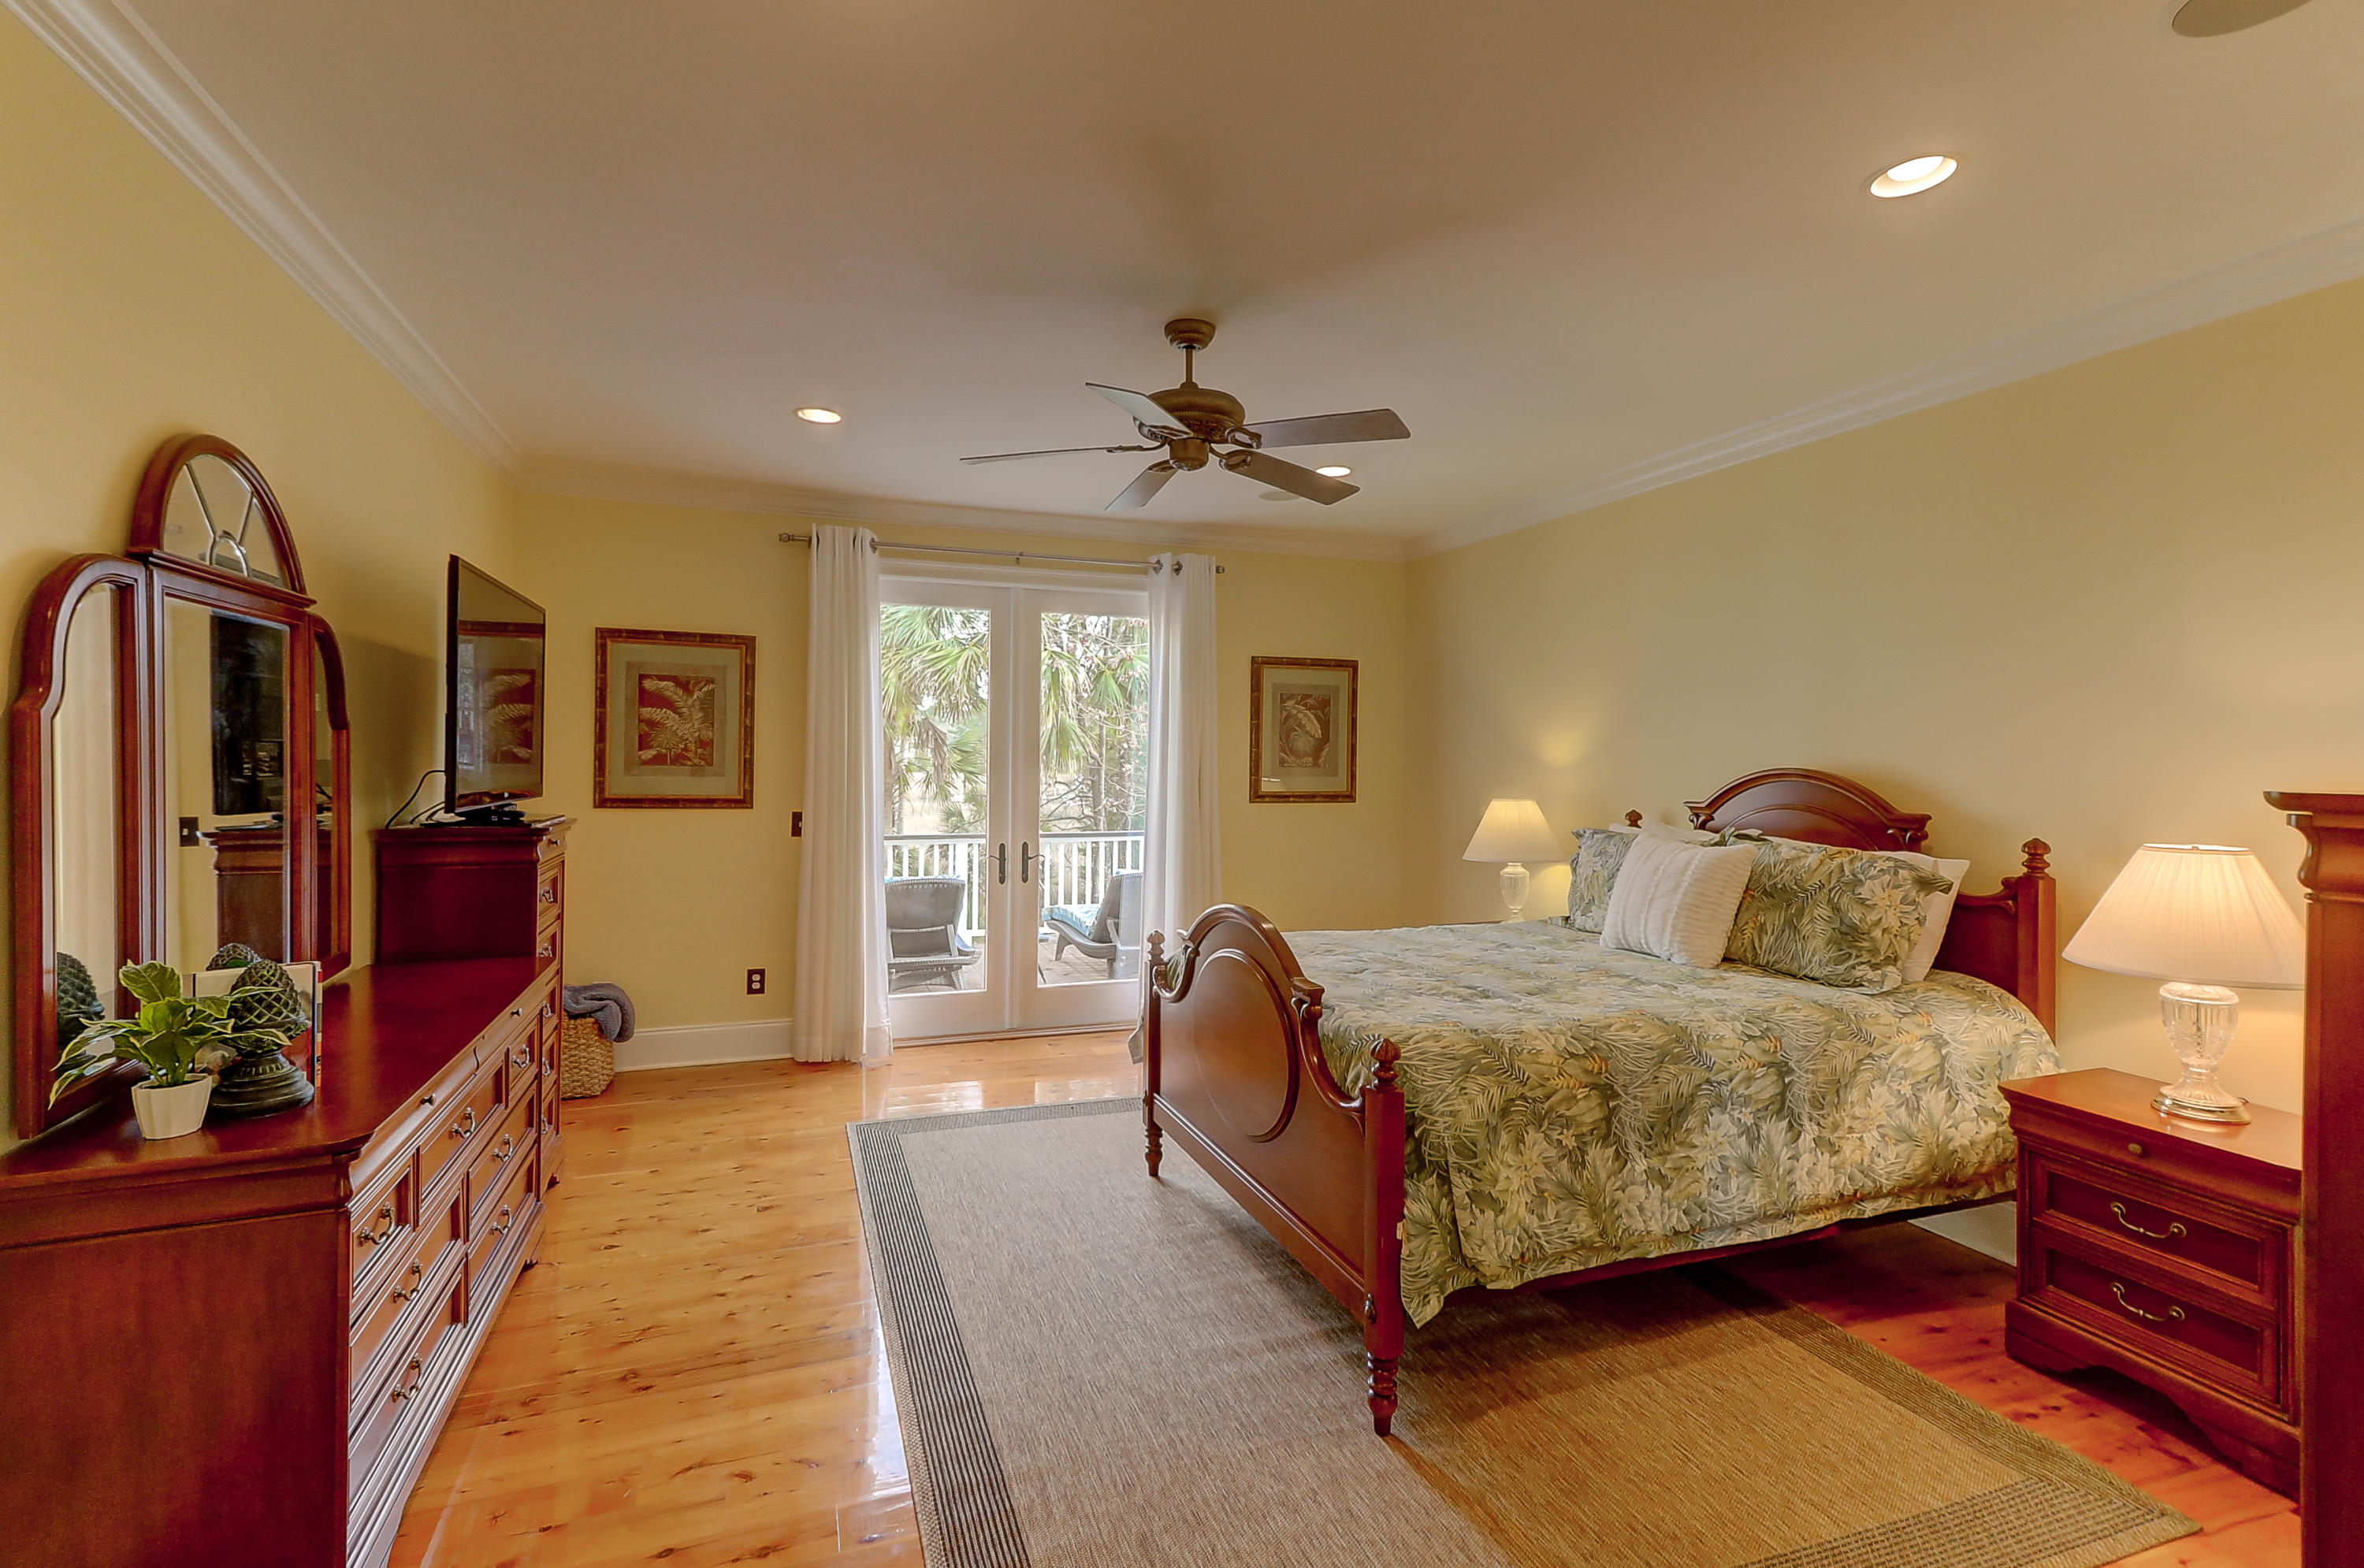 Dunes West Homes For Sale - 1764 Greenspoint, Mount Pleasant, SC - 25